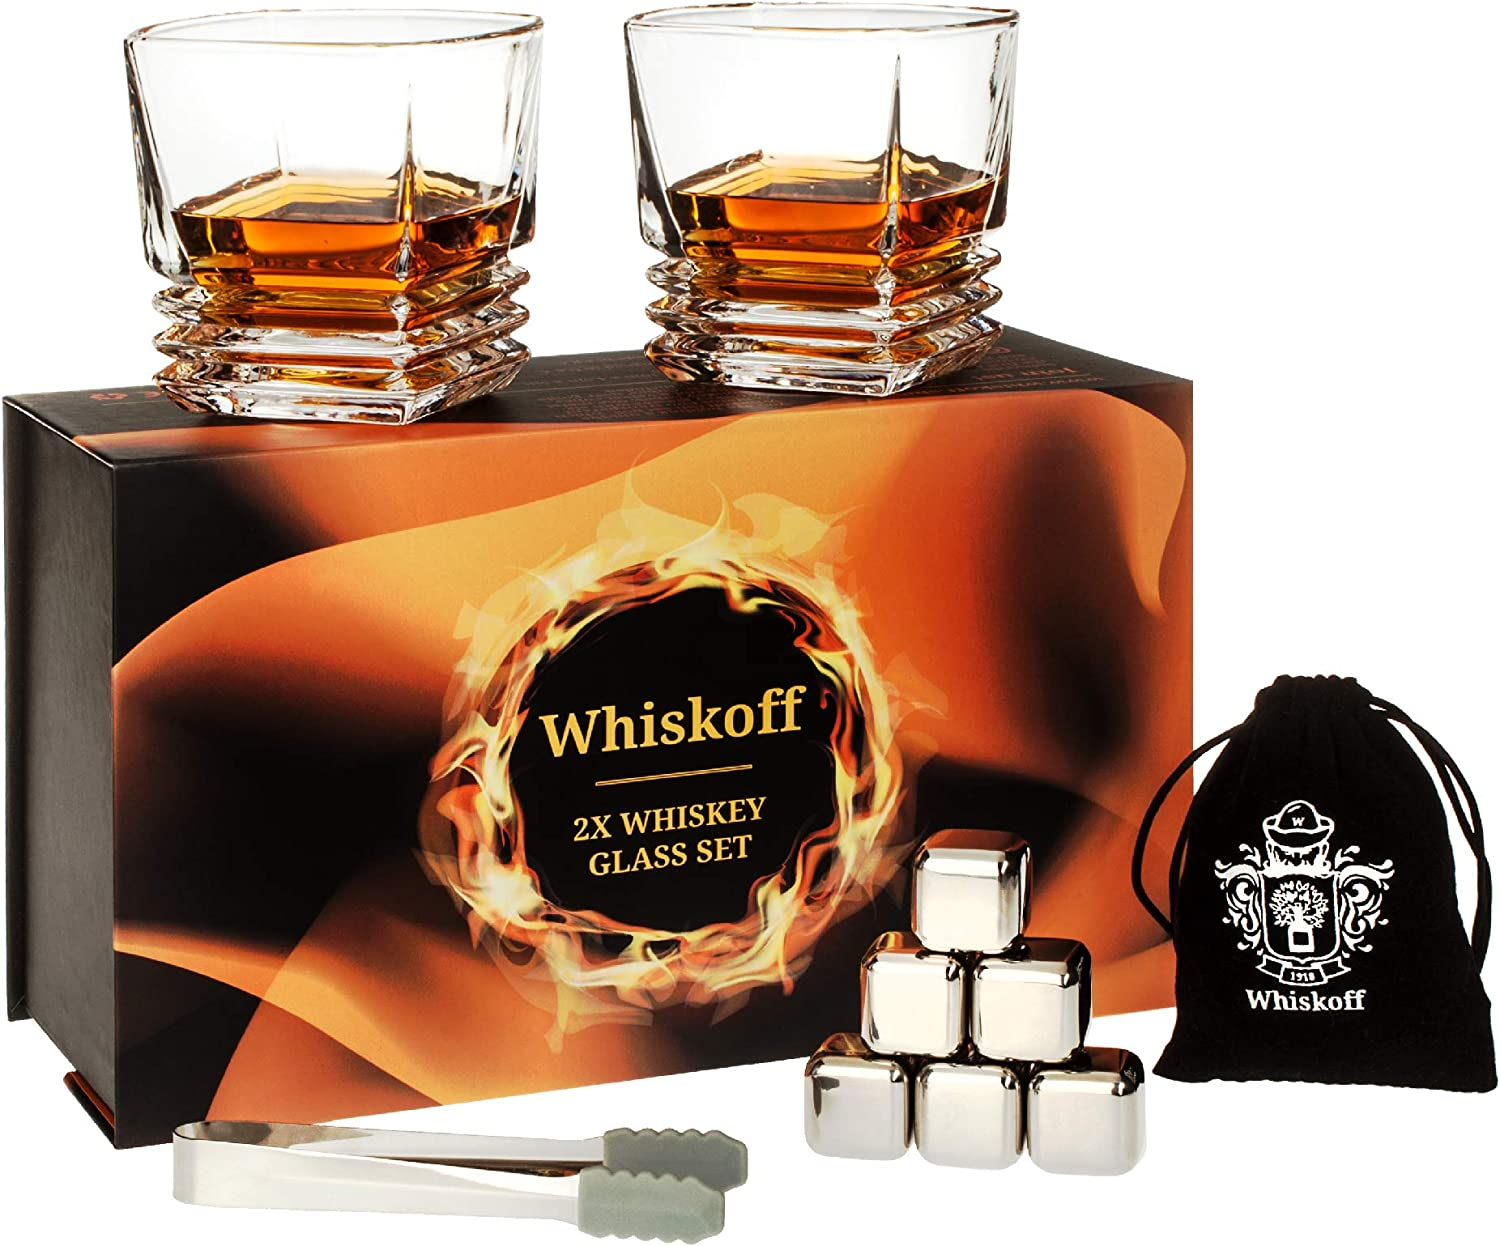 Whiskey Glass Set - Bourbon Stainless Steel Ice Cubes Set of 6 - Whiskey Scotch Gift Box - Bourbon Glasses Gift Set - Whiskey Metal Cubes Gift Box - Whisky Stone Ice Cubes Set - Birthday Gift For Men